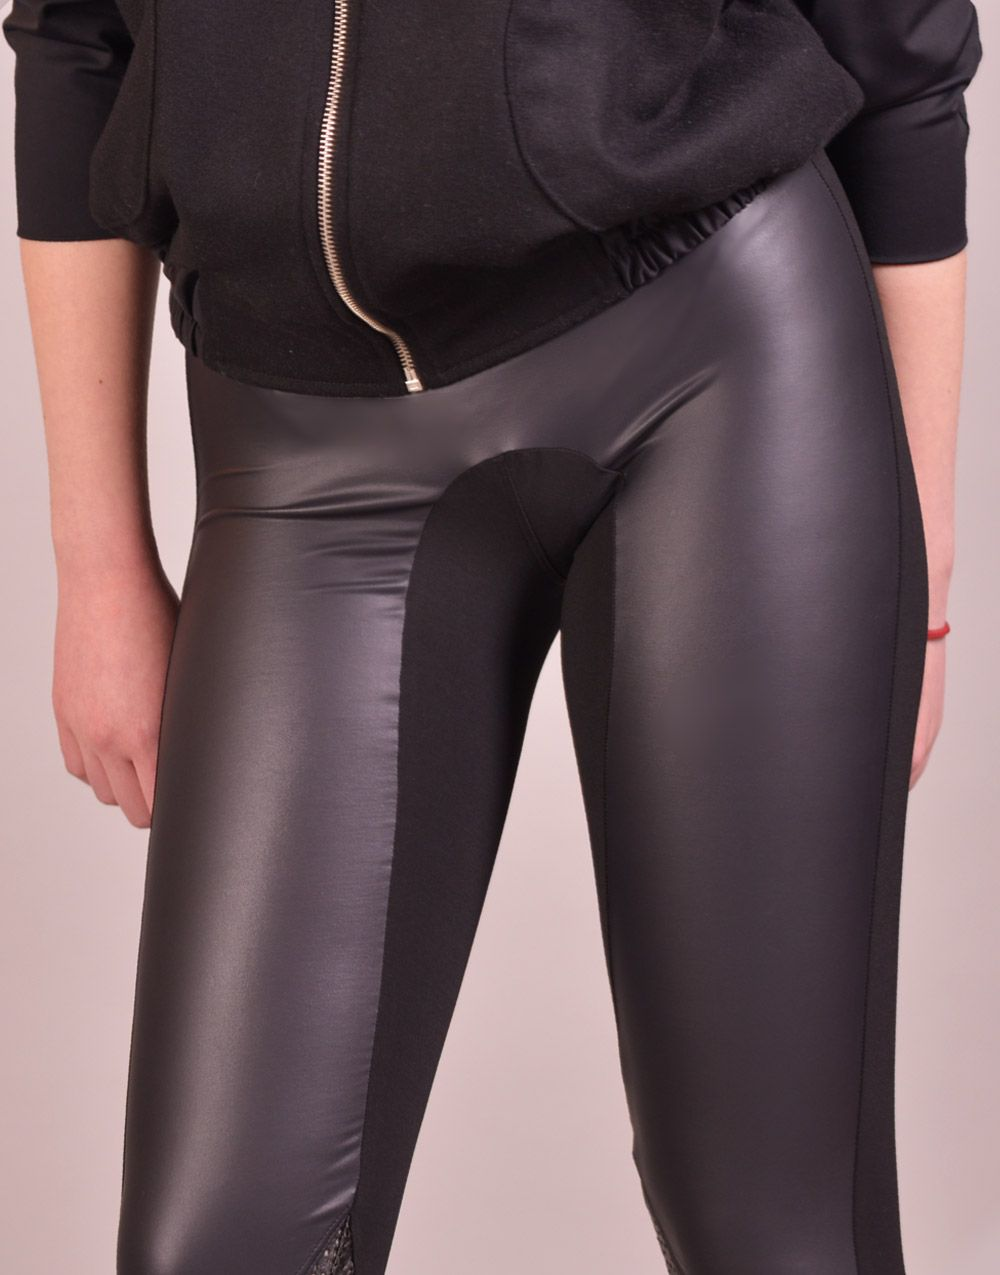 d1db98122b448 Latex Clothing, Spandex Leggings, Sexy Pants ♡♥♡ Sizes Available sizes: XS  – XXL Before choosing a size, please consult the last picture for details  ...